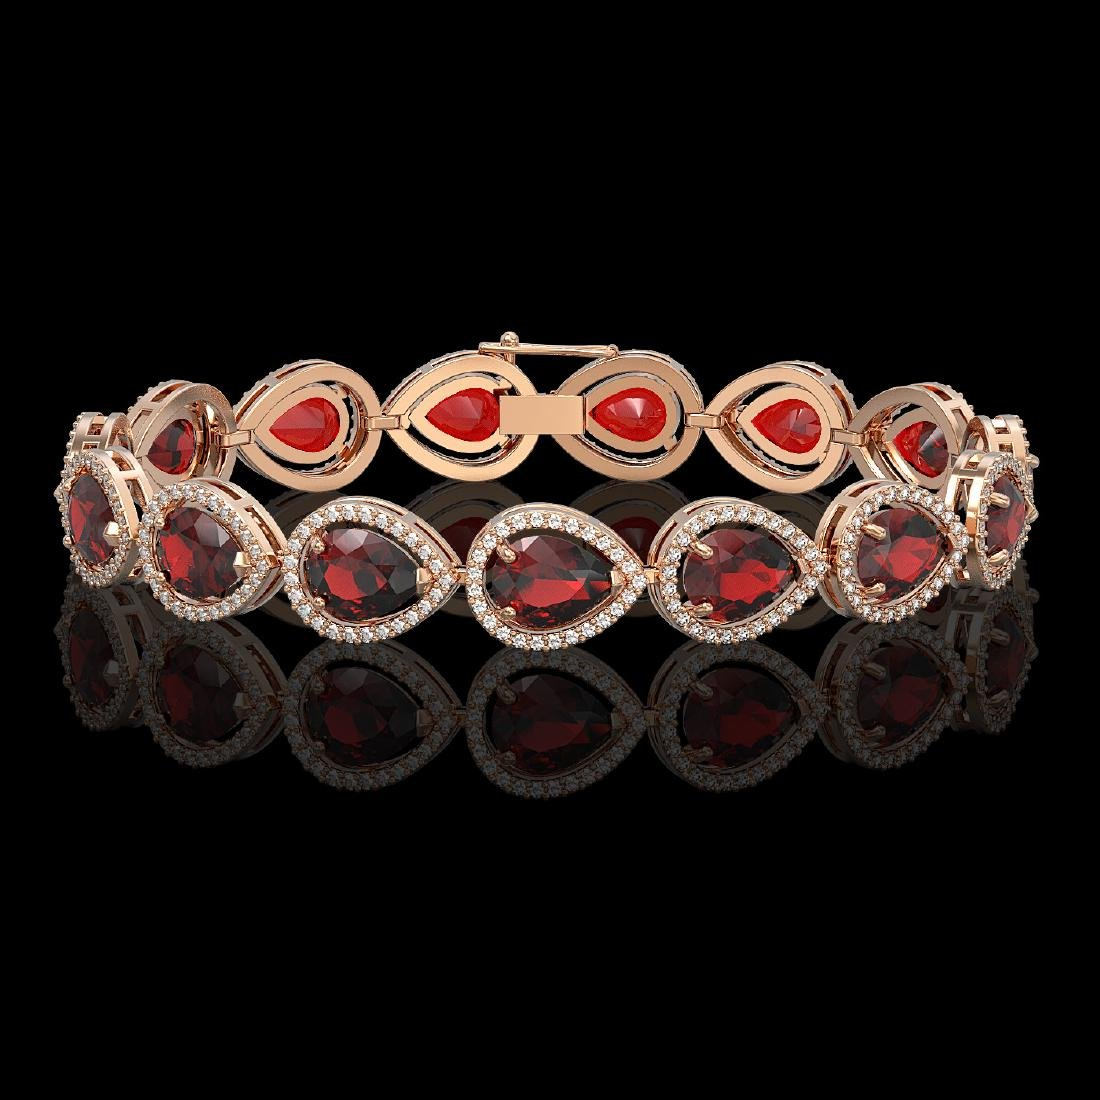 17.45 CTW Garnet & Diamond Halo Bracelet 10K Rose Gold